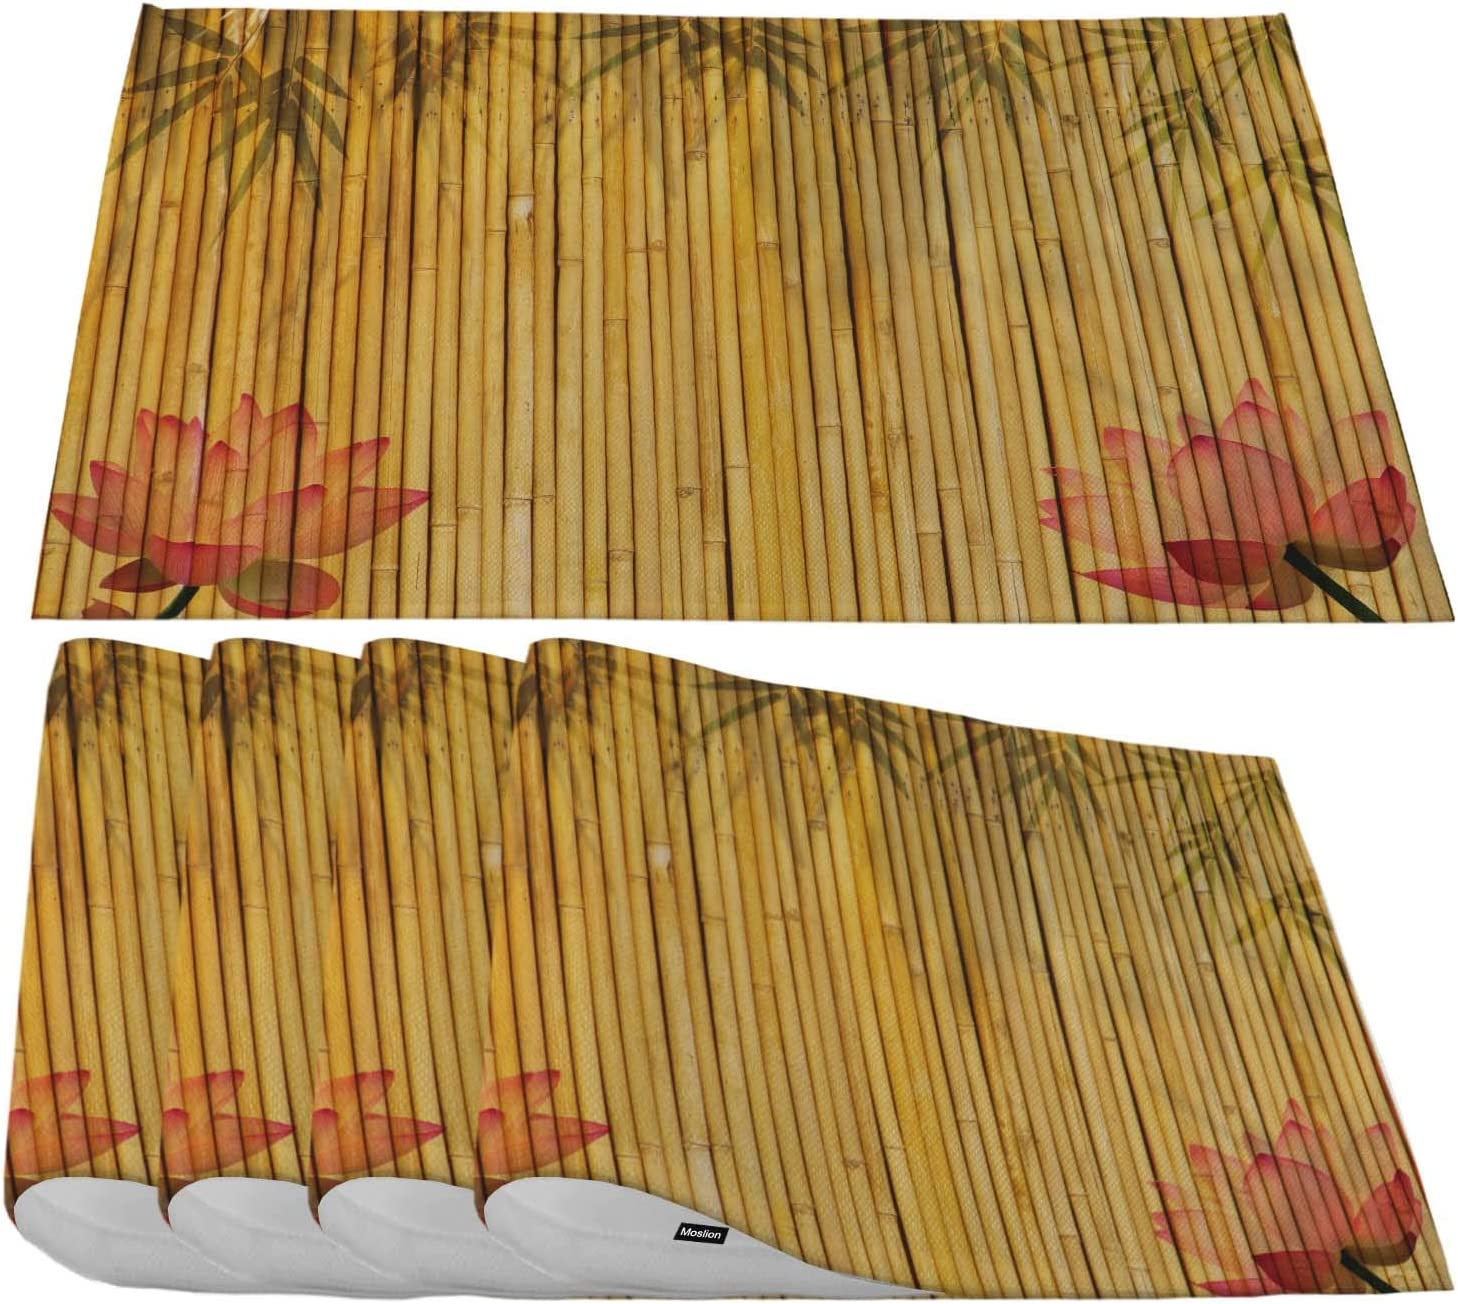 Moslion Bamboo Placemats Asia OFFer Beauftil Bloom and Sales of SALE items from new works P Leaves